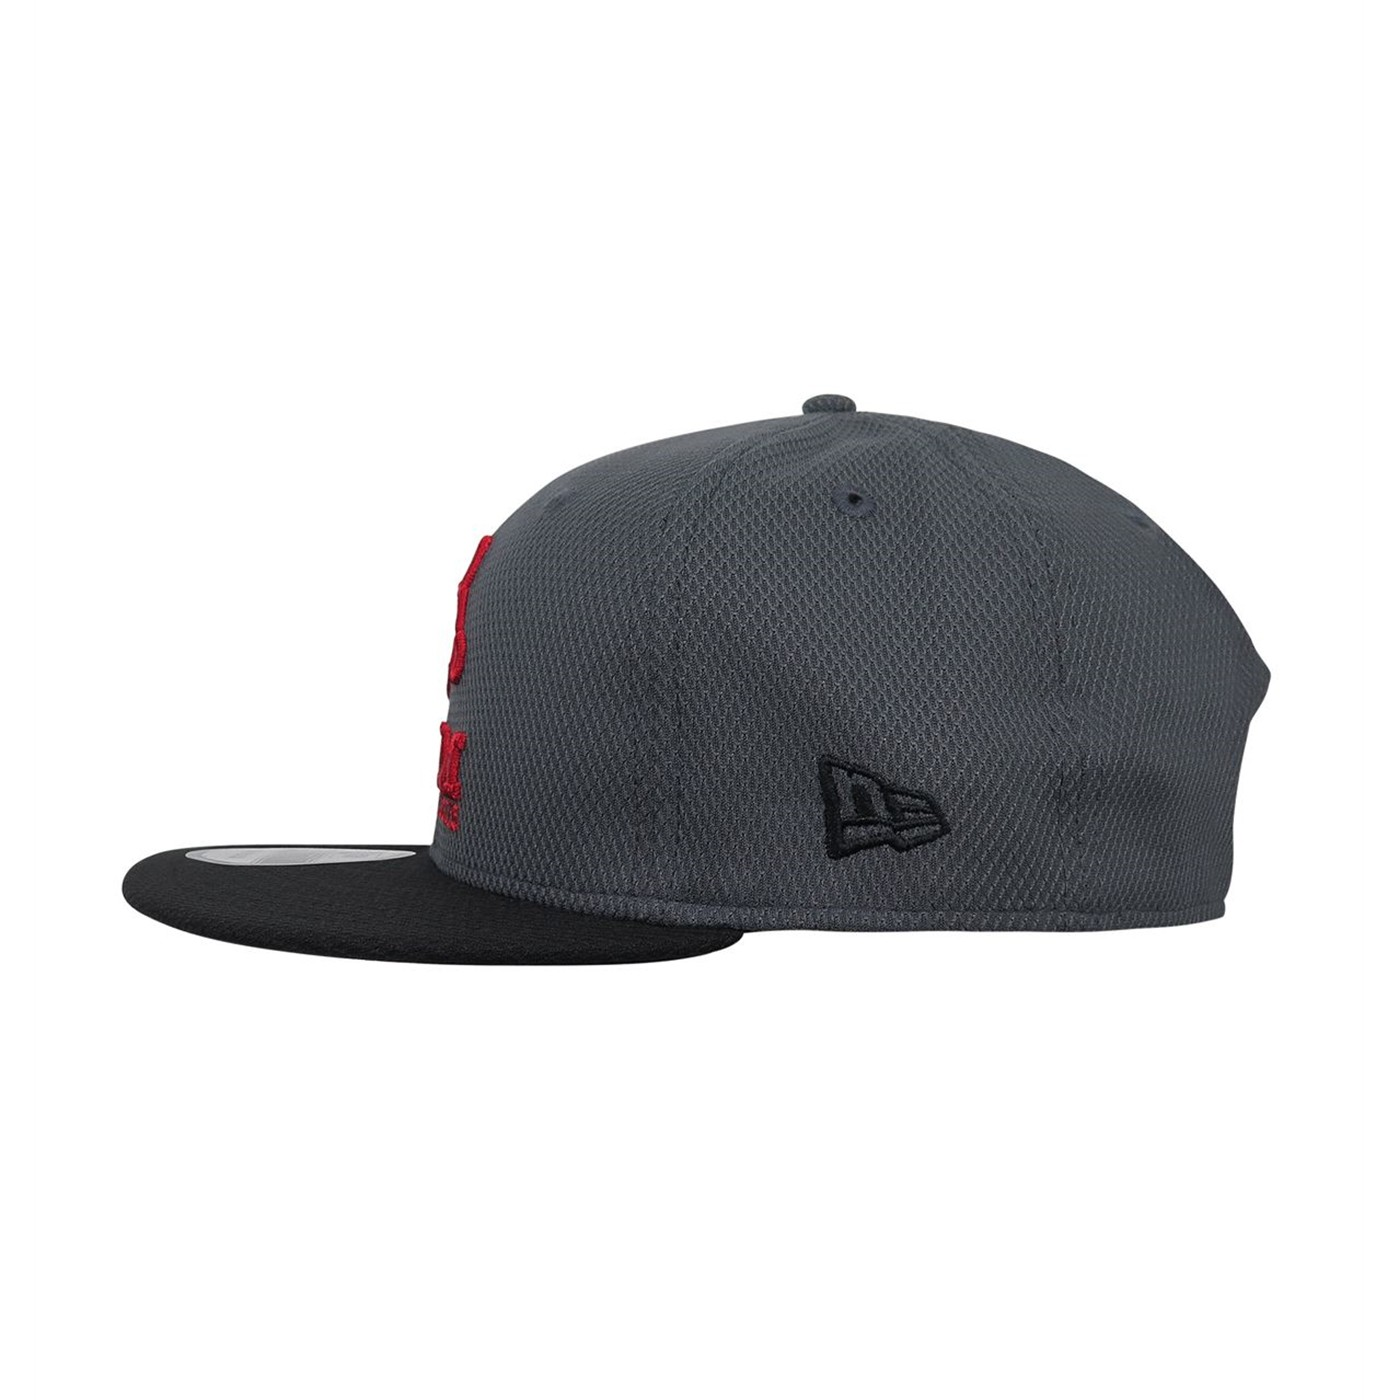 Ant-Man Pym Tech 9Fifty Adjustable Hat